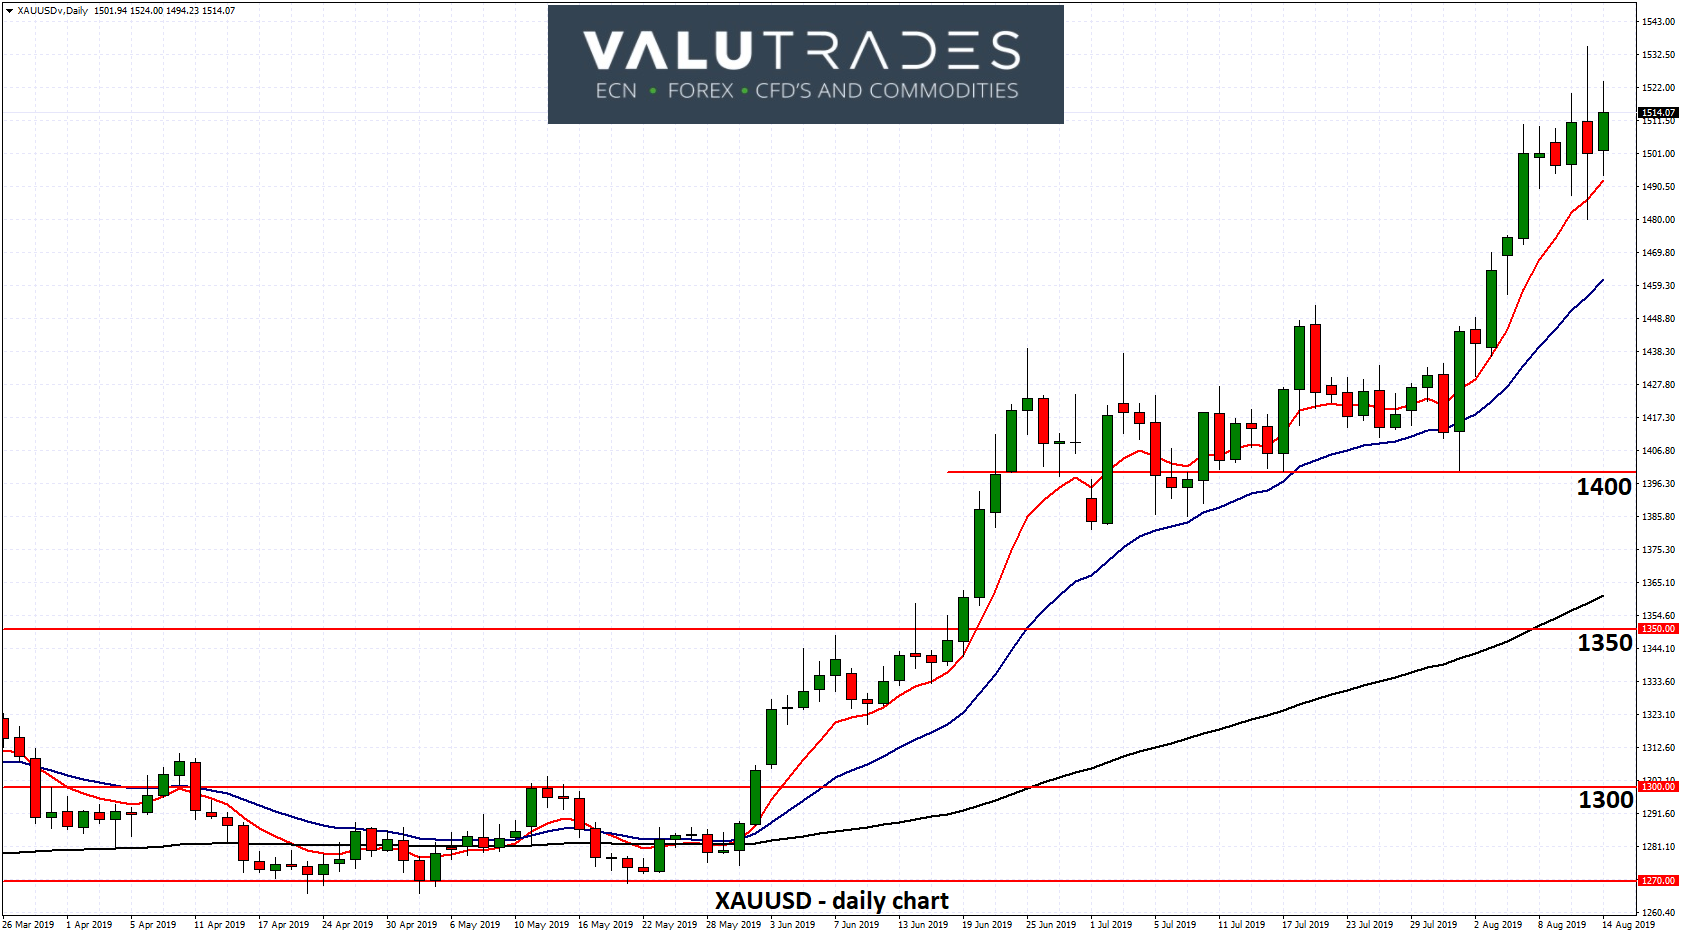 XAUUSD - Steady Above 1500 as US Equities Fall Sharply on Recession Concerns